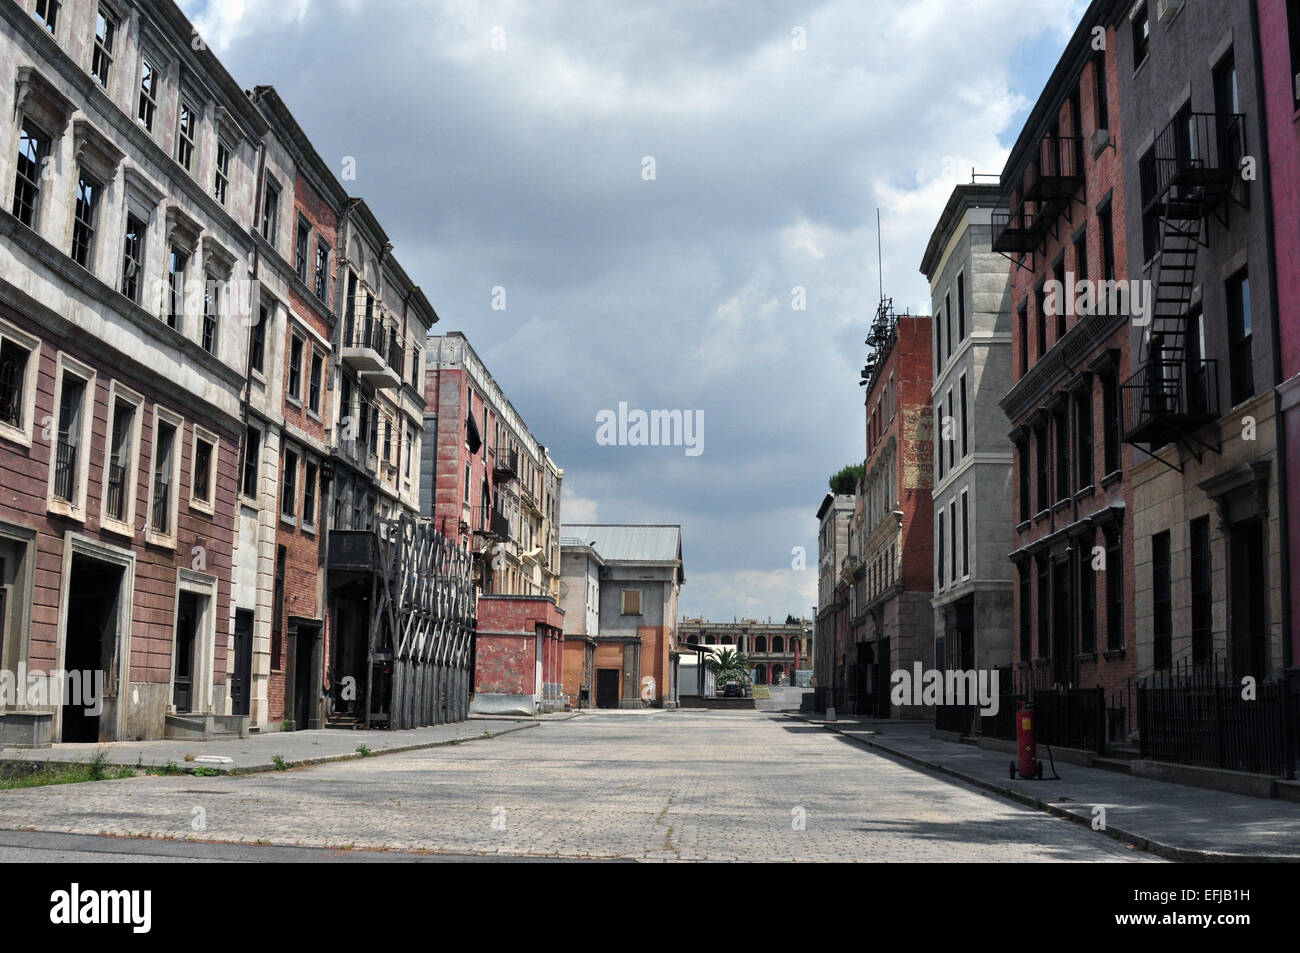 Scenery for the film Gangs of New York by Martin Scorsese at the studio Cinecitta - Stock Image